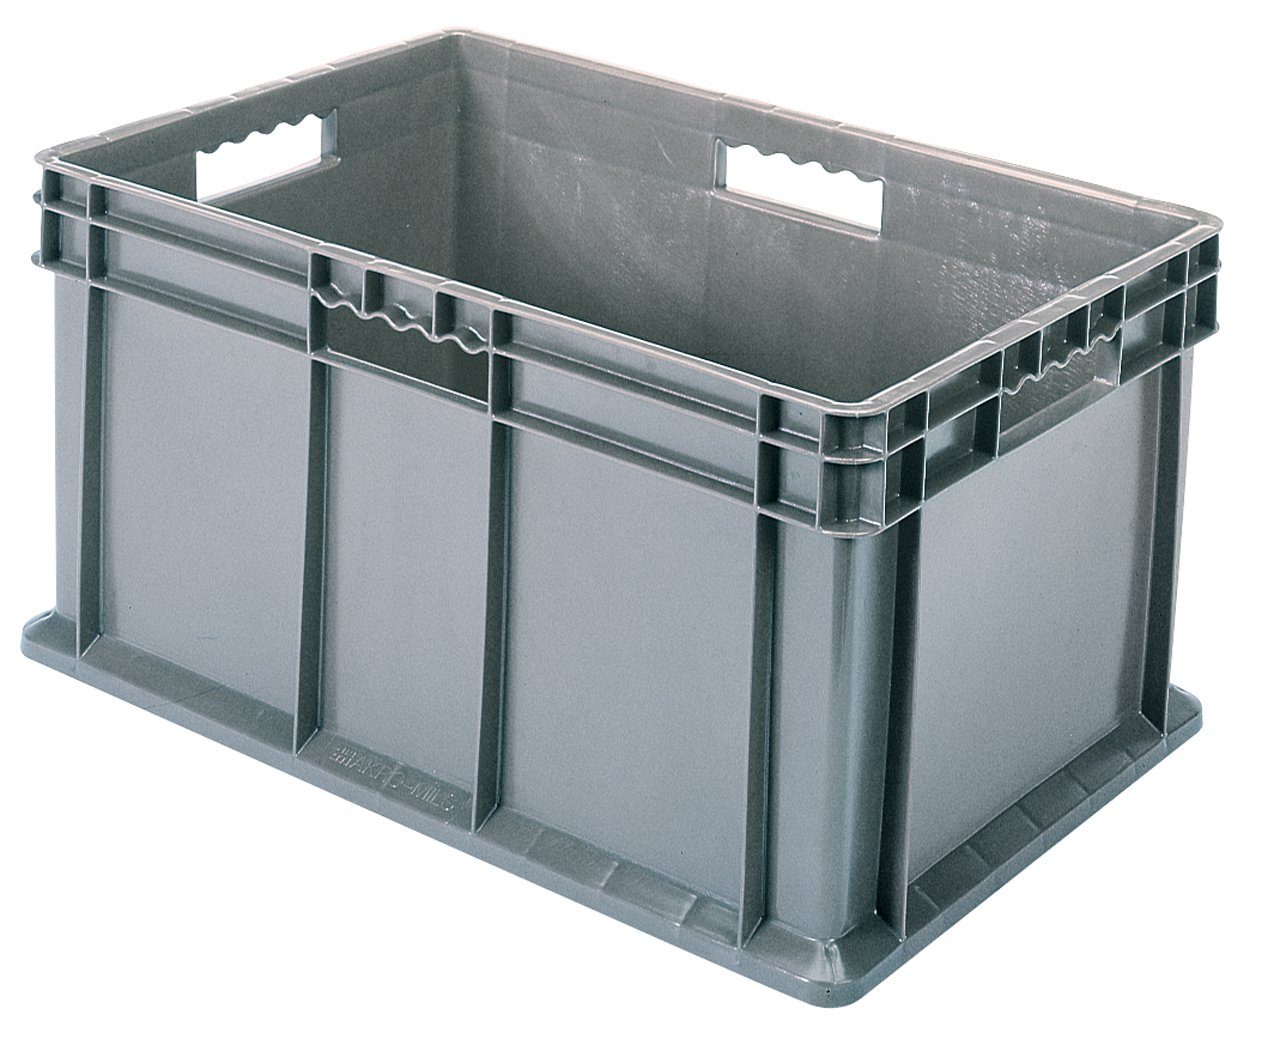 Akro-Mils 37686 24-Inch by 16-Inch by 16-Inch Straight Wall Container Tote with Solid Sides and Solid Base, Case of 2, Grey